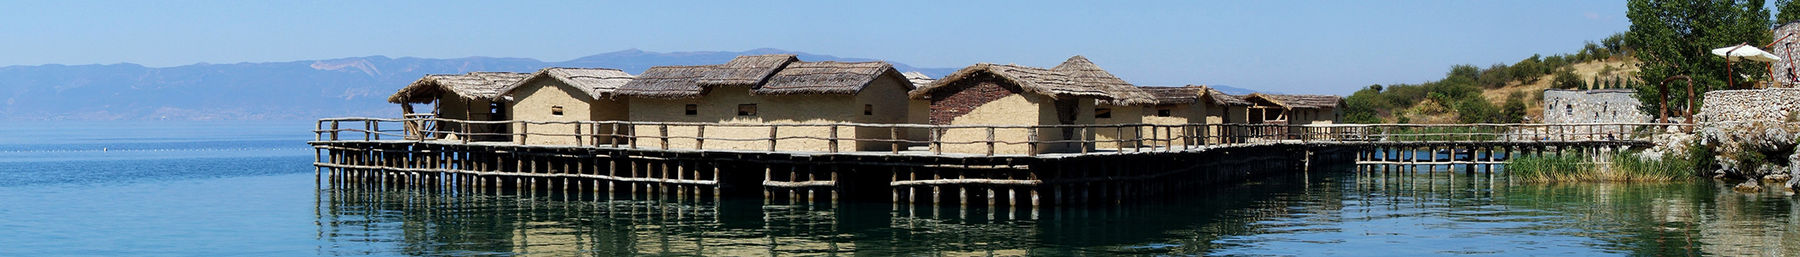 Museum on Water, Ohrid banner.jpg